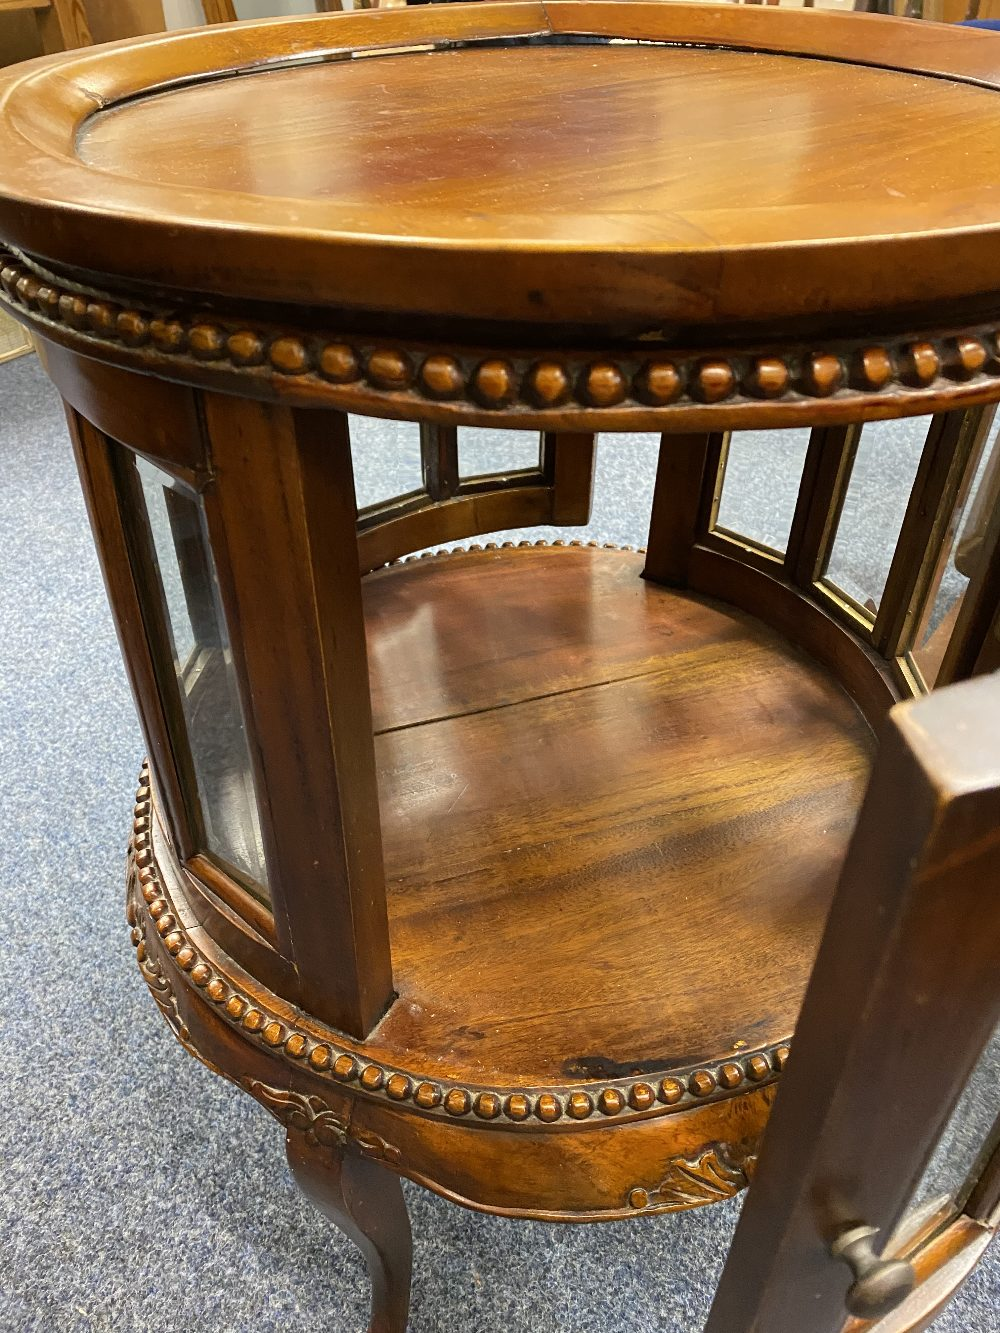 REPRODUCTION HARDWOOD DRUM TYPE DRINKS CABINET having a lift-off circular tray top, beaded and - Image 2 of 4